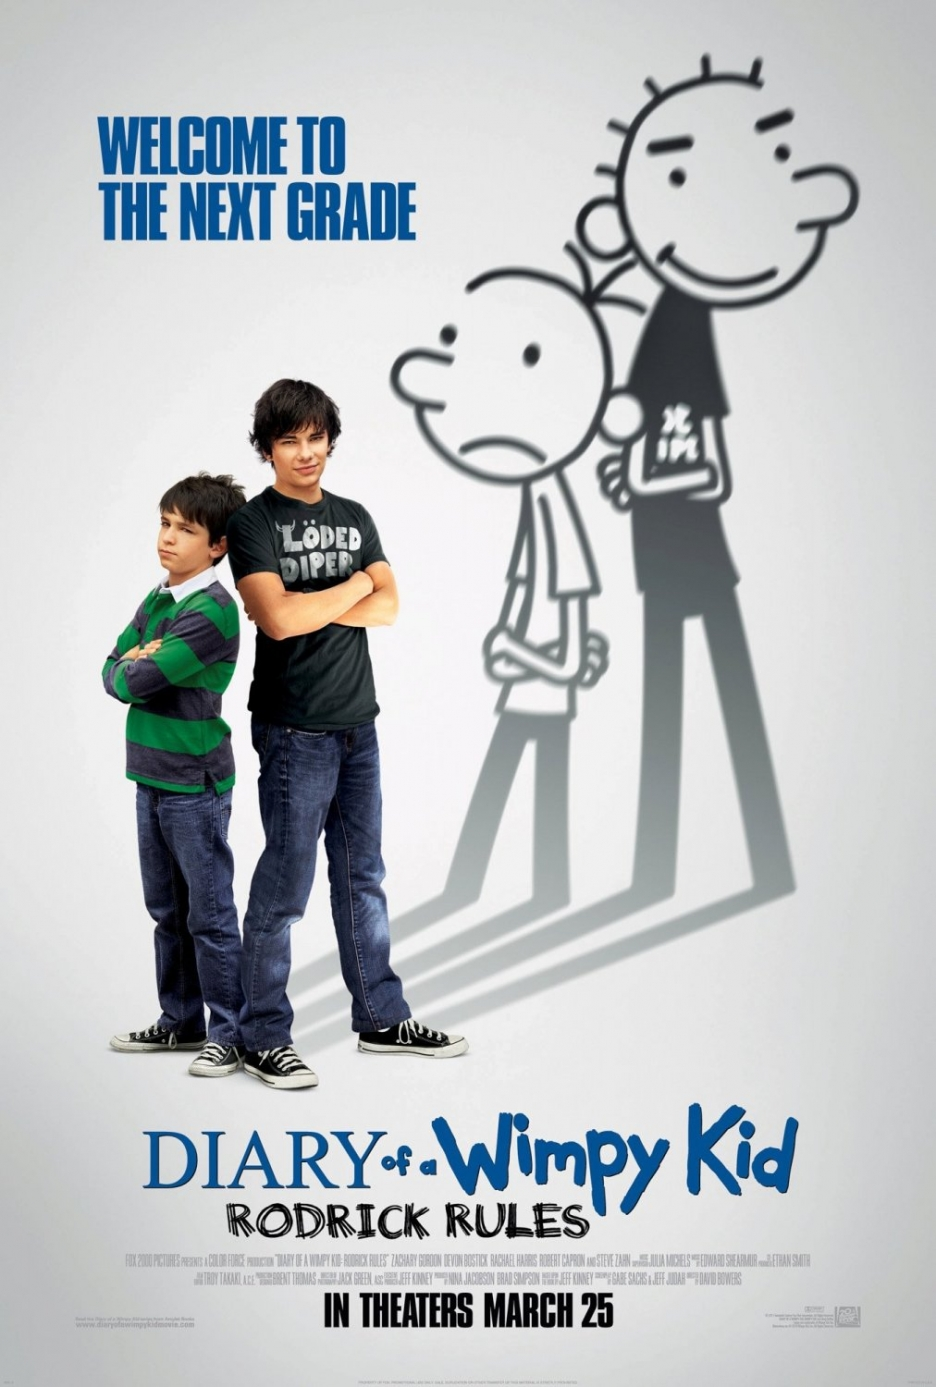 Lord Popcorn Movie Synopsis Diary Of A Wimpy Kid Rodrick Rules